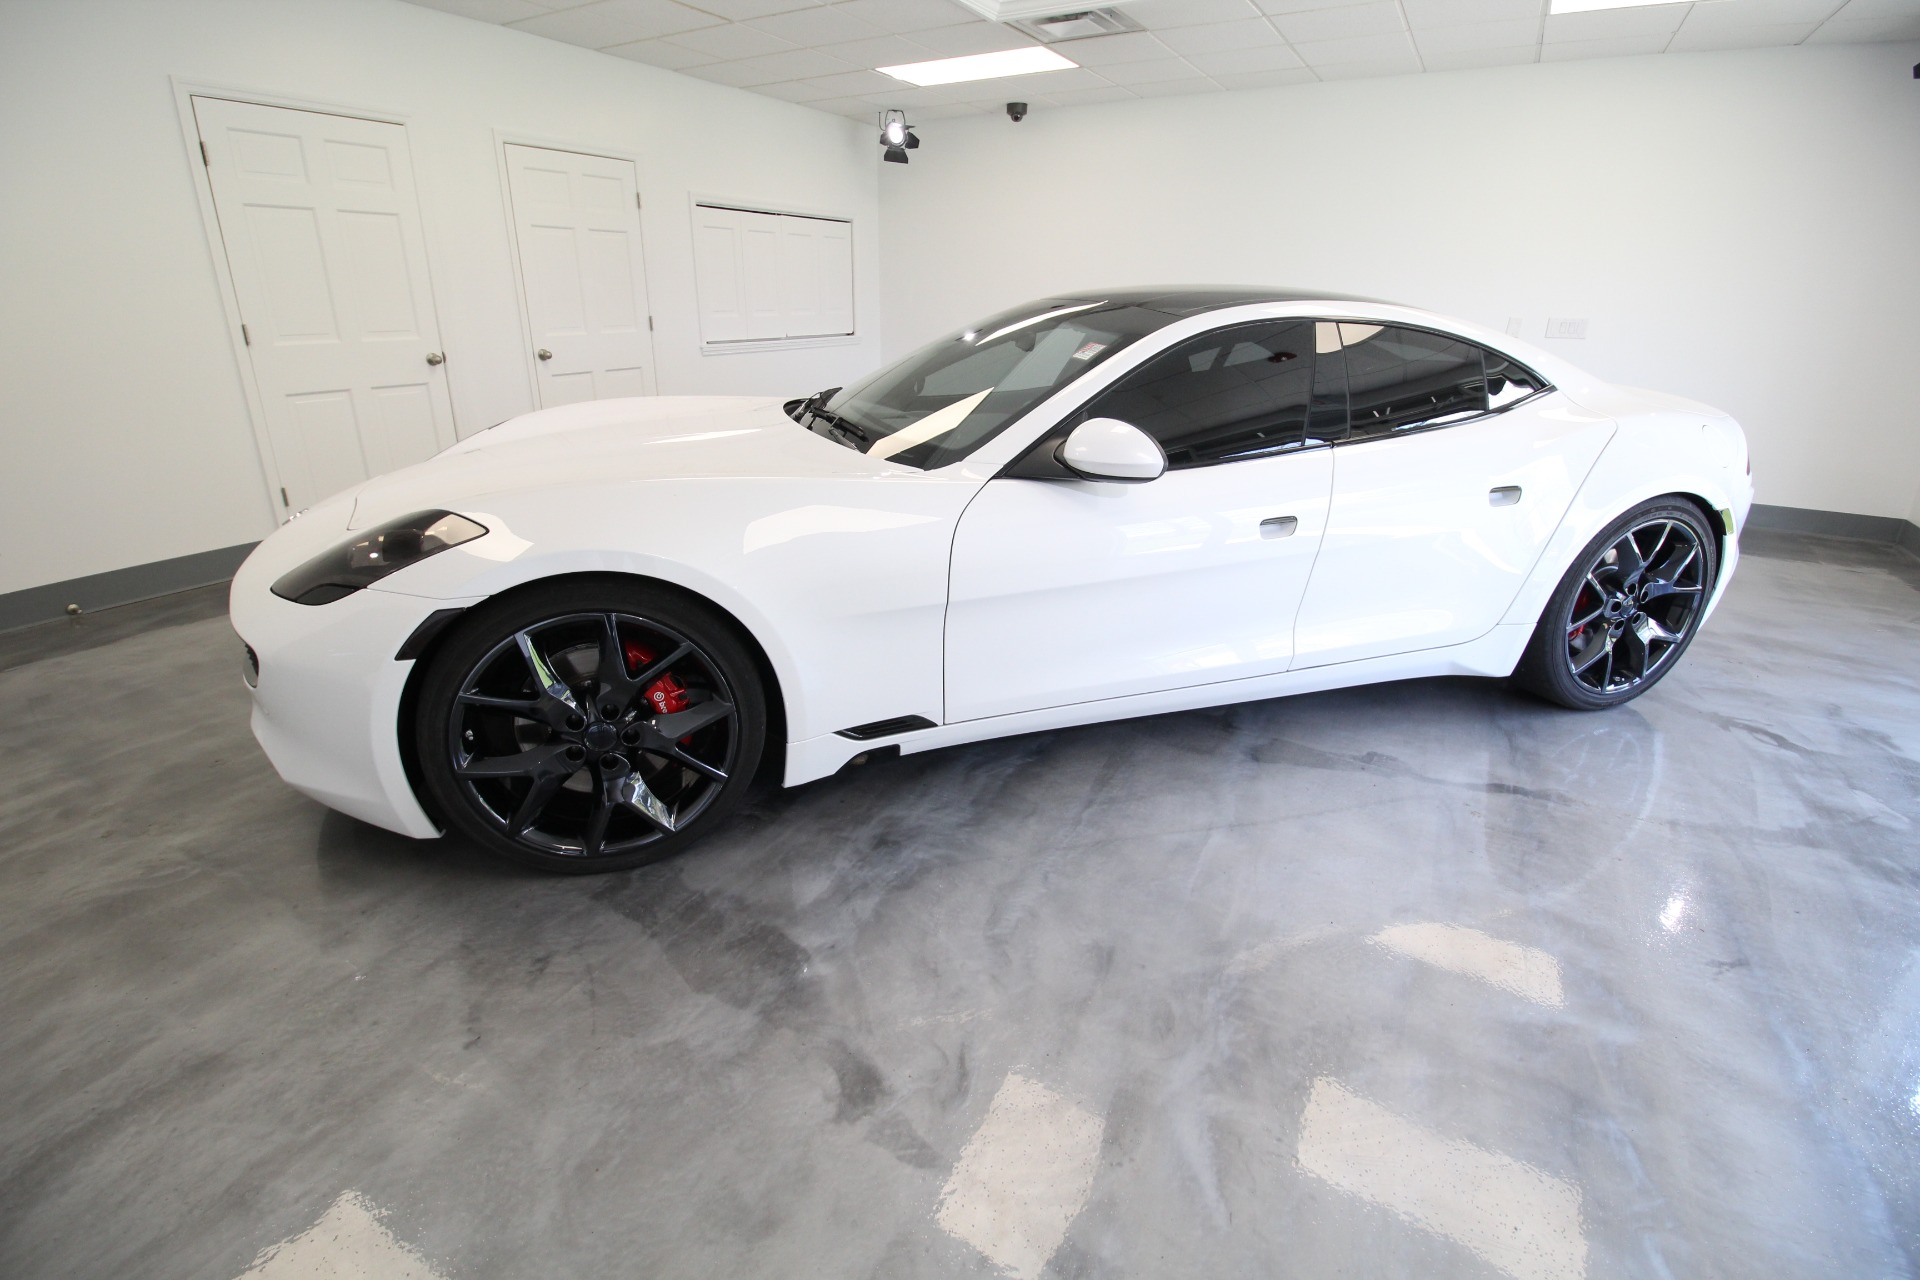 Used 2019 KARMA REVERO REVERO 1 OWNER TRADE IN FOR A 2021 KARMA | Albany, NY